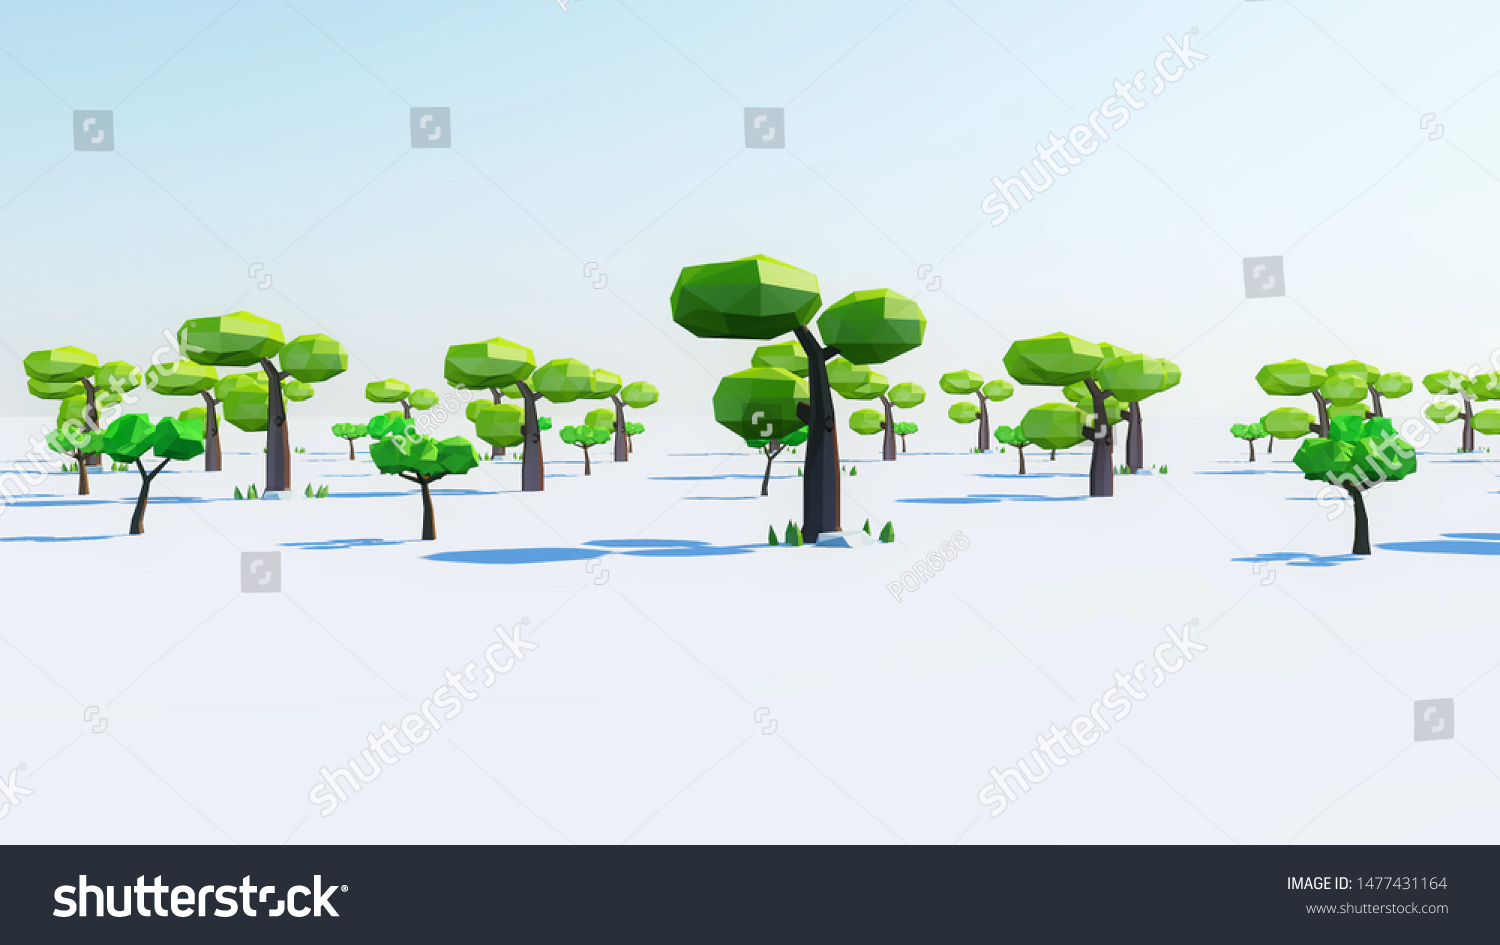 Lowpoly Cartoon Tree 3d Render Stock Illustration 1477431164 Free 3d model of cartoon tree id48722 for free download, files available in: shutterstock